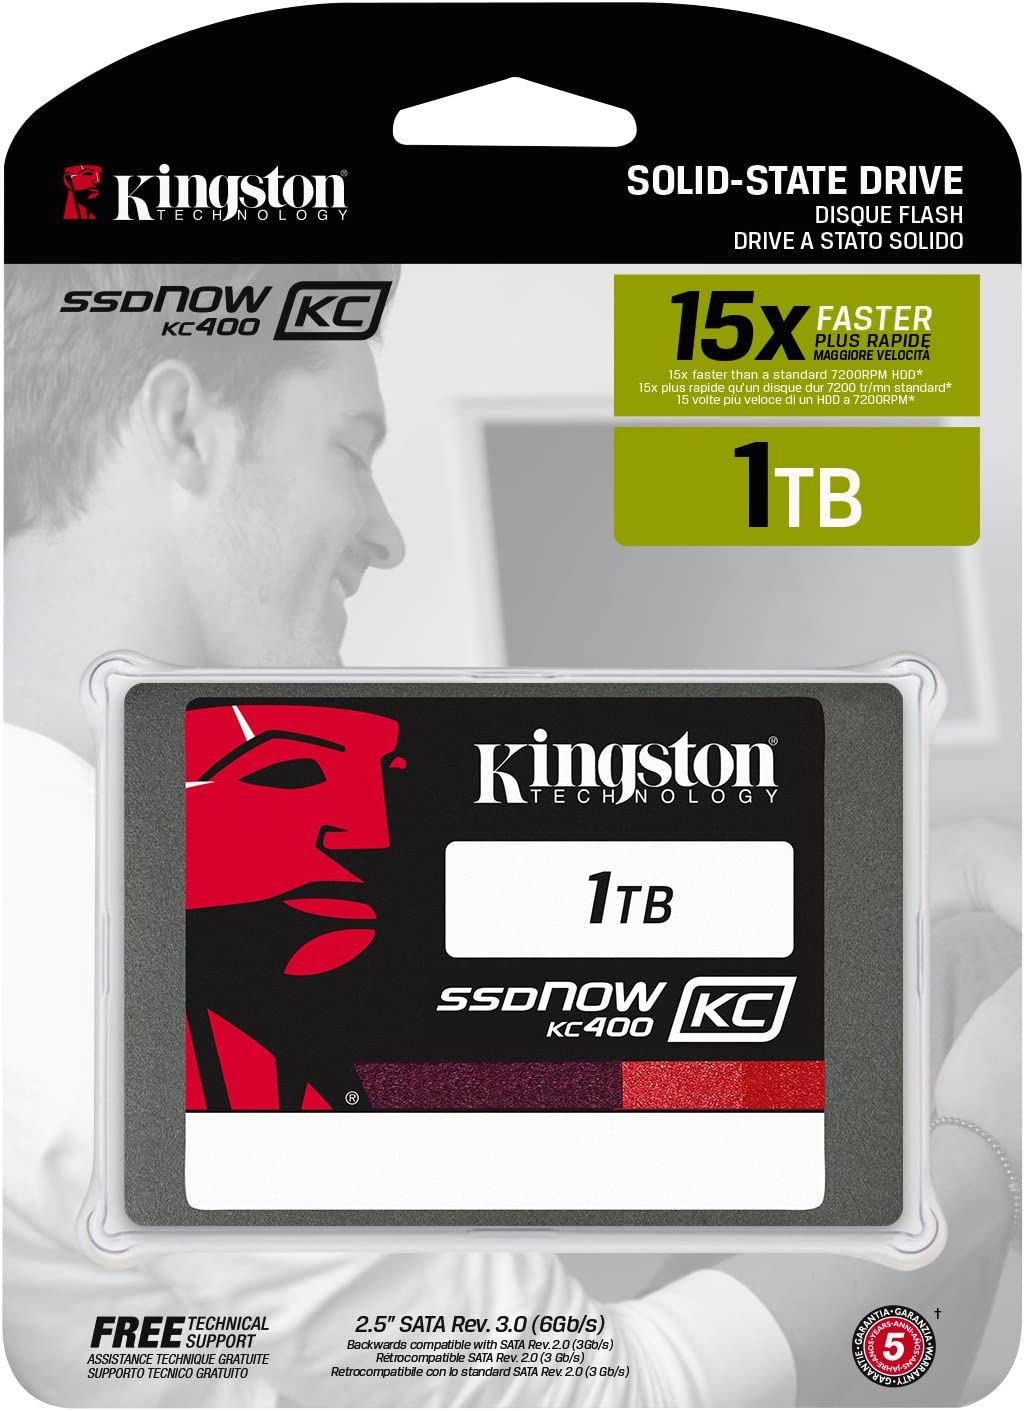 Kingston KC400 SSDNow - Disco Duro sólido de 1 TB (SATA 3, 2.5